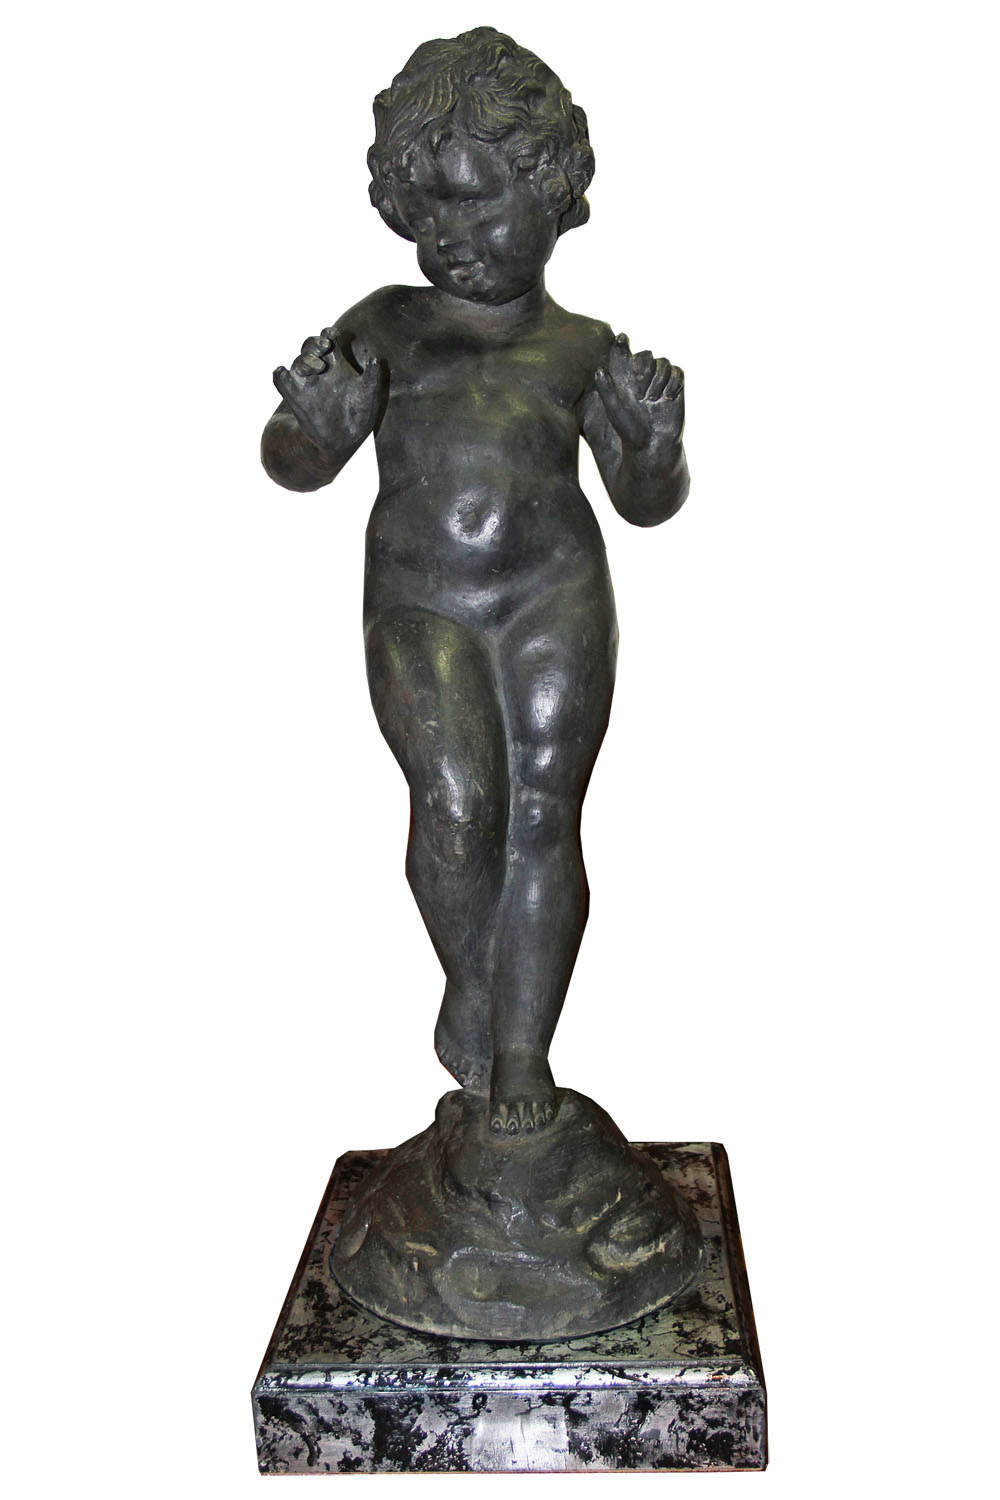 A 19th Century Italian Pewter Sculpture of a Putti No. 4529